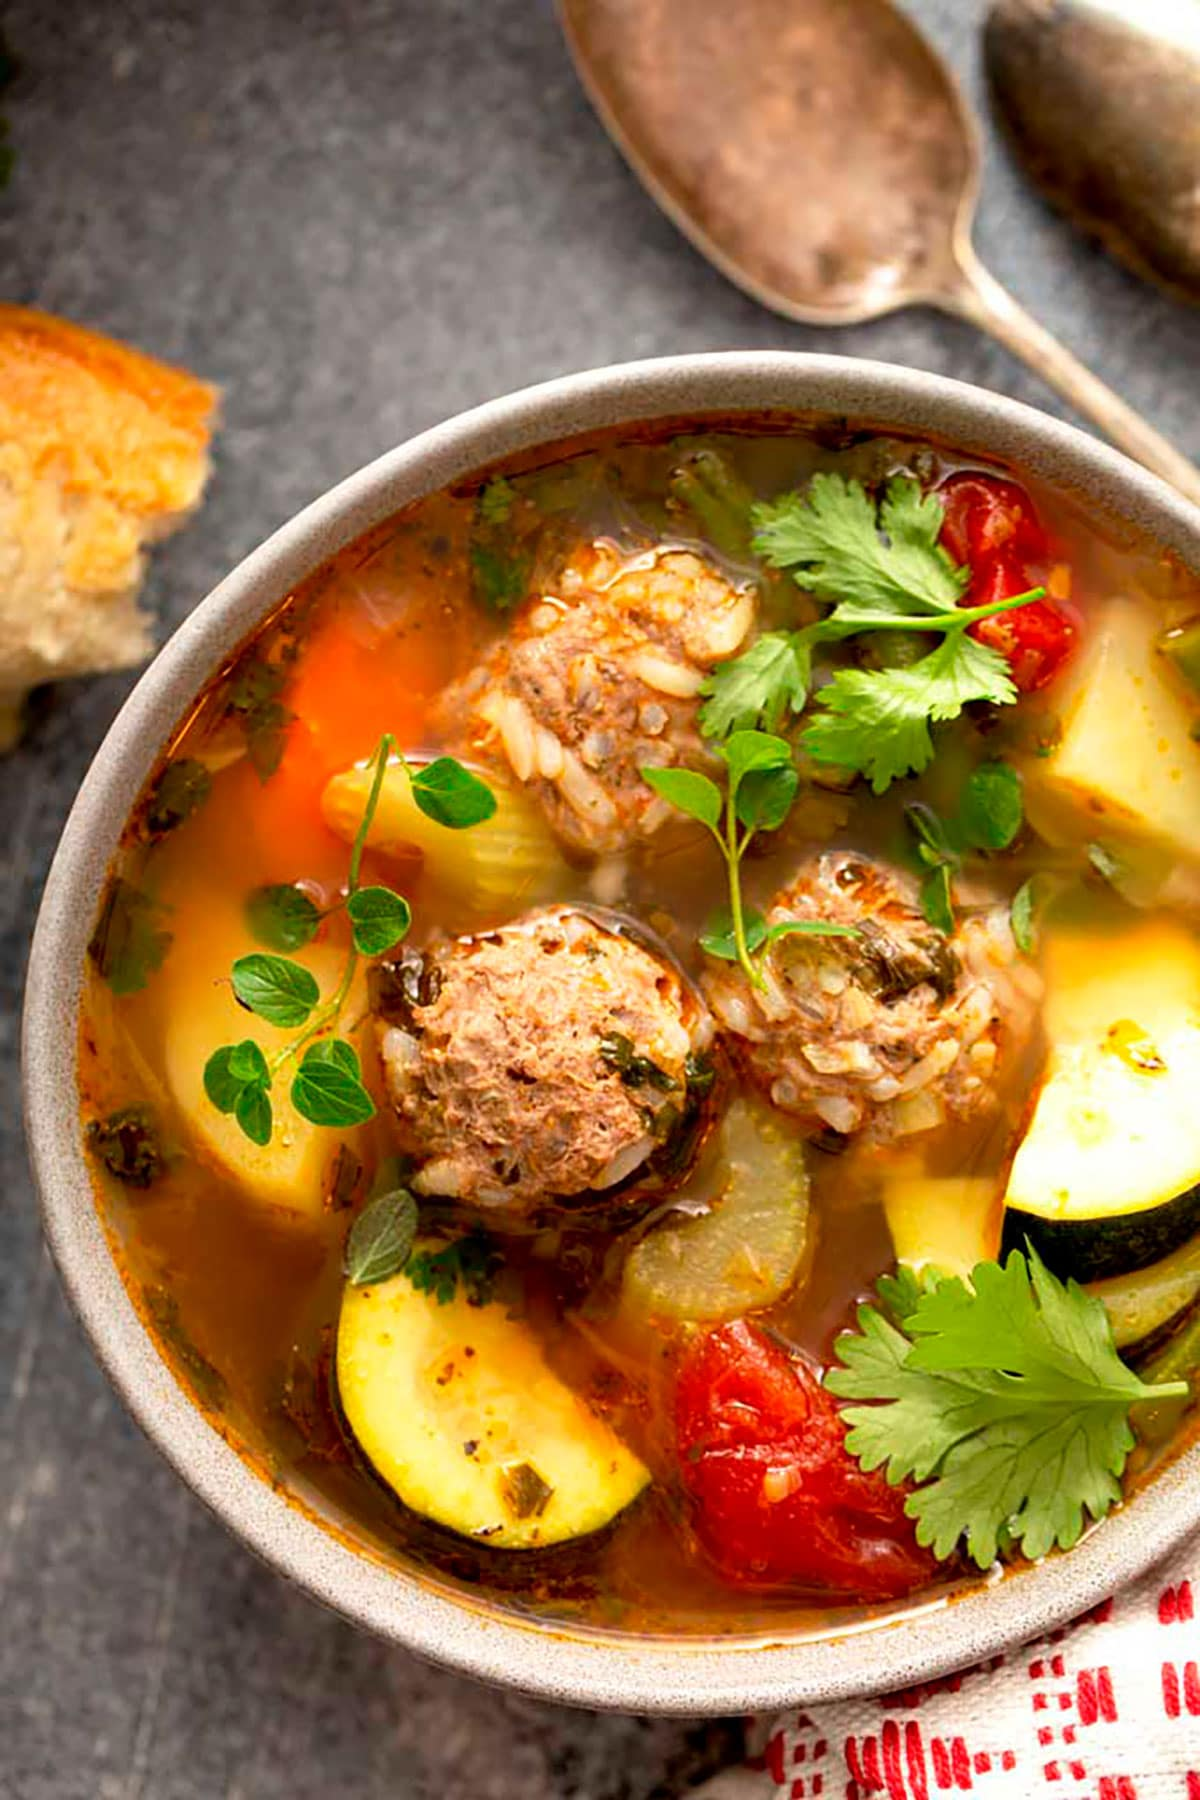 Close up view of Albondigas soup with vegetables in a white bowl